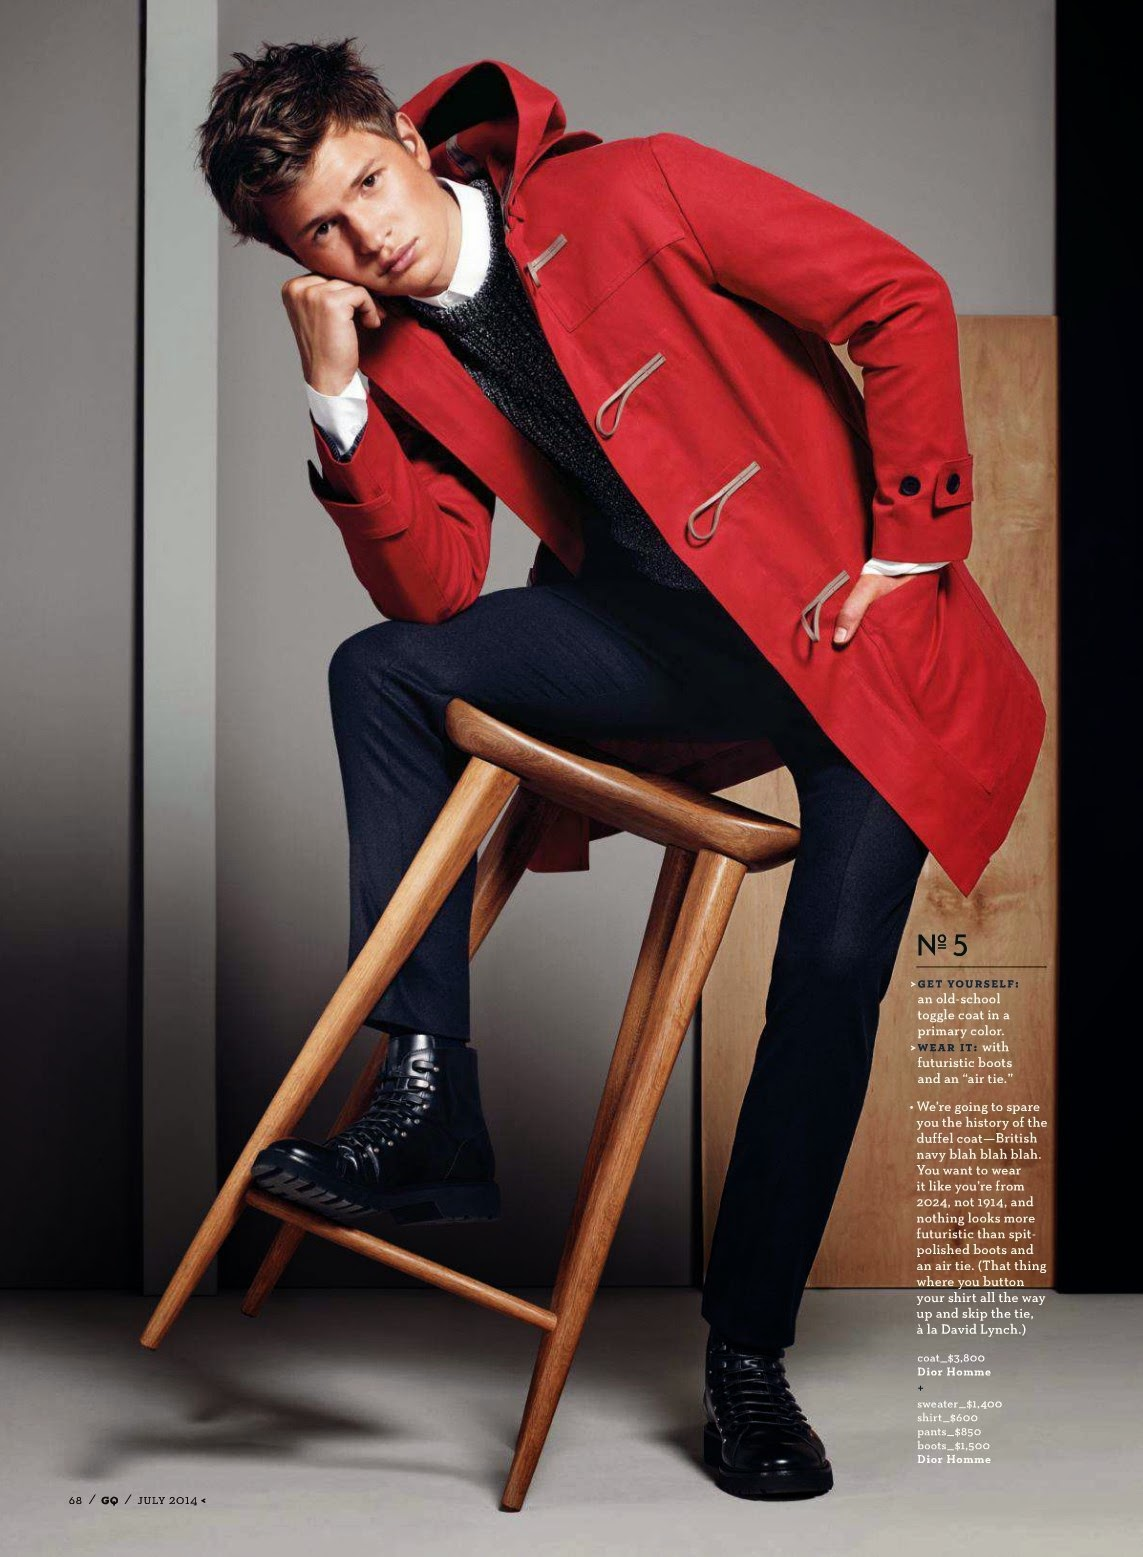 Ansel Elgort Models Fall Fashions for GQ July Issue